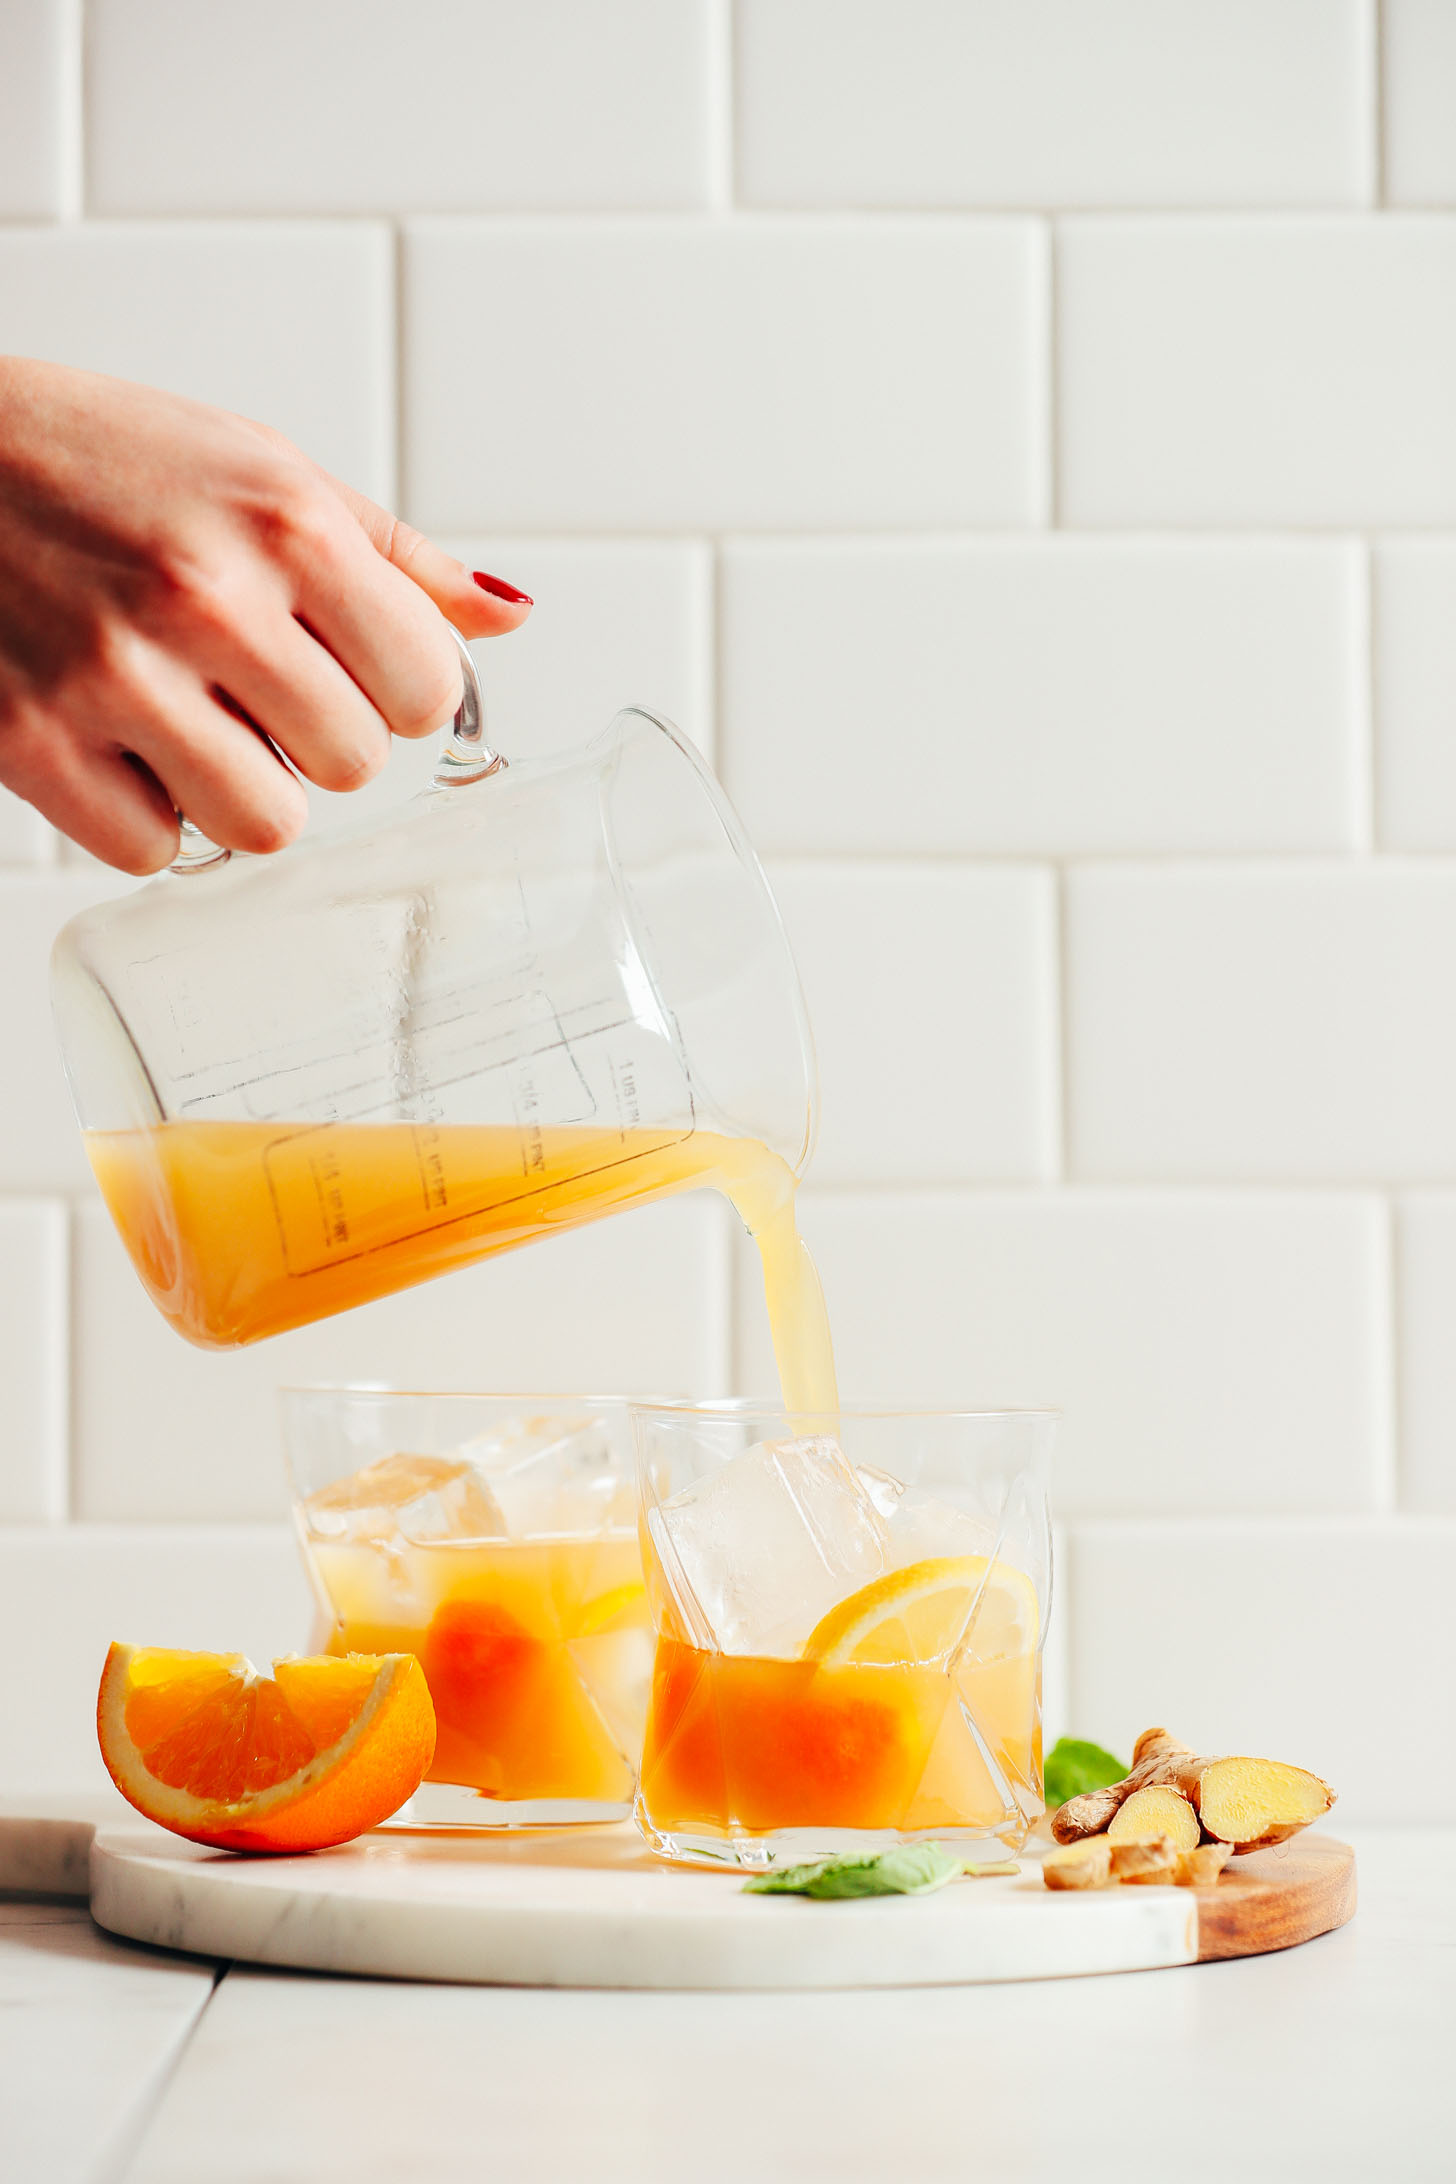 AMAZING Orange Whiskey Ginger with Mint! A 6-ingredient, refreshing, naturally sweetened cocktail perfect for NYE and beyond! #NYE #cocktail #bourbon #ginger #orange #mint #minimalistbaker #recipe